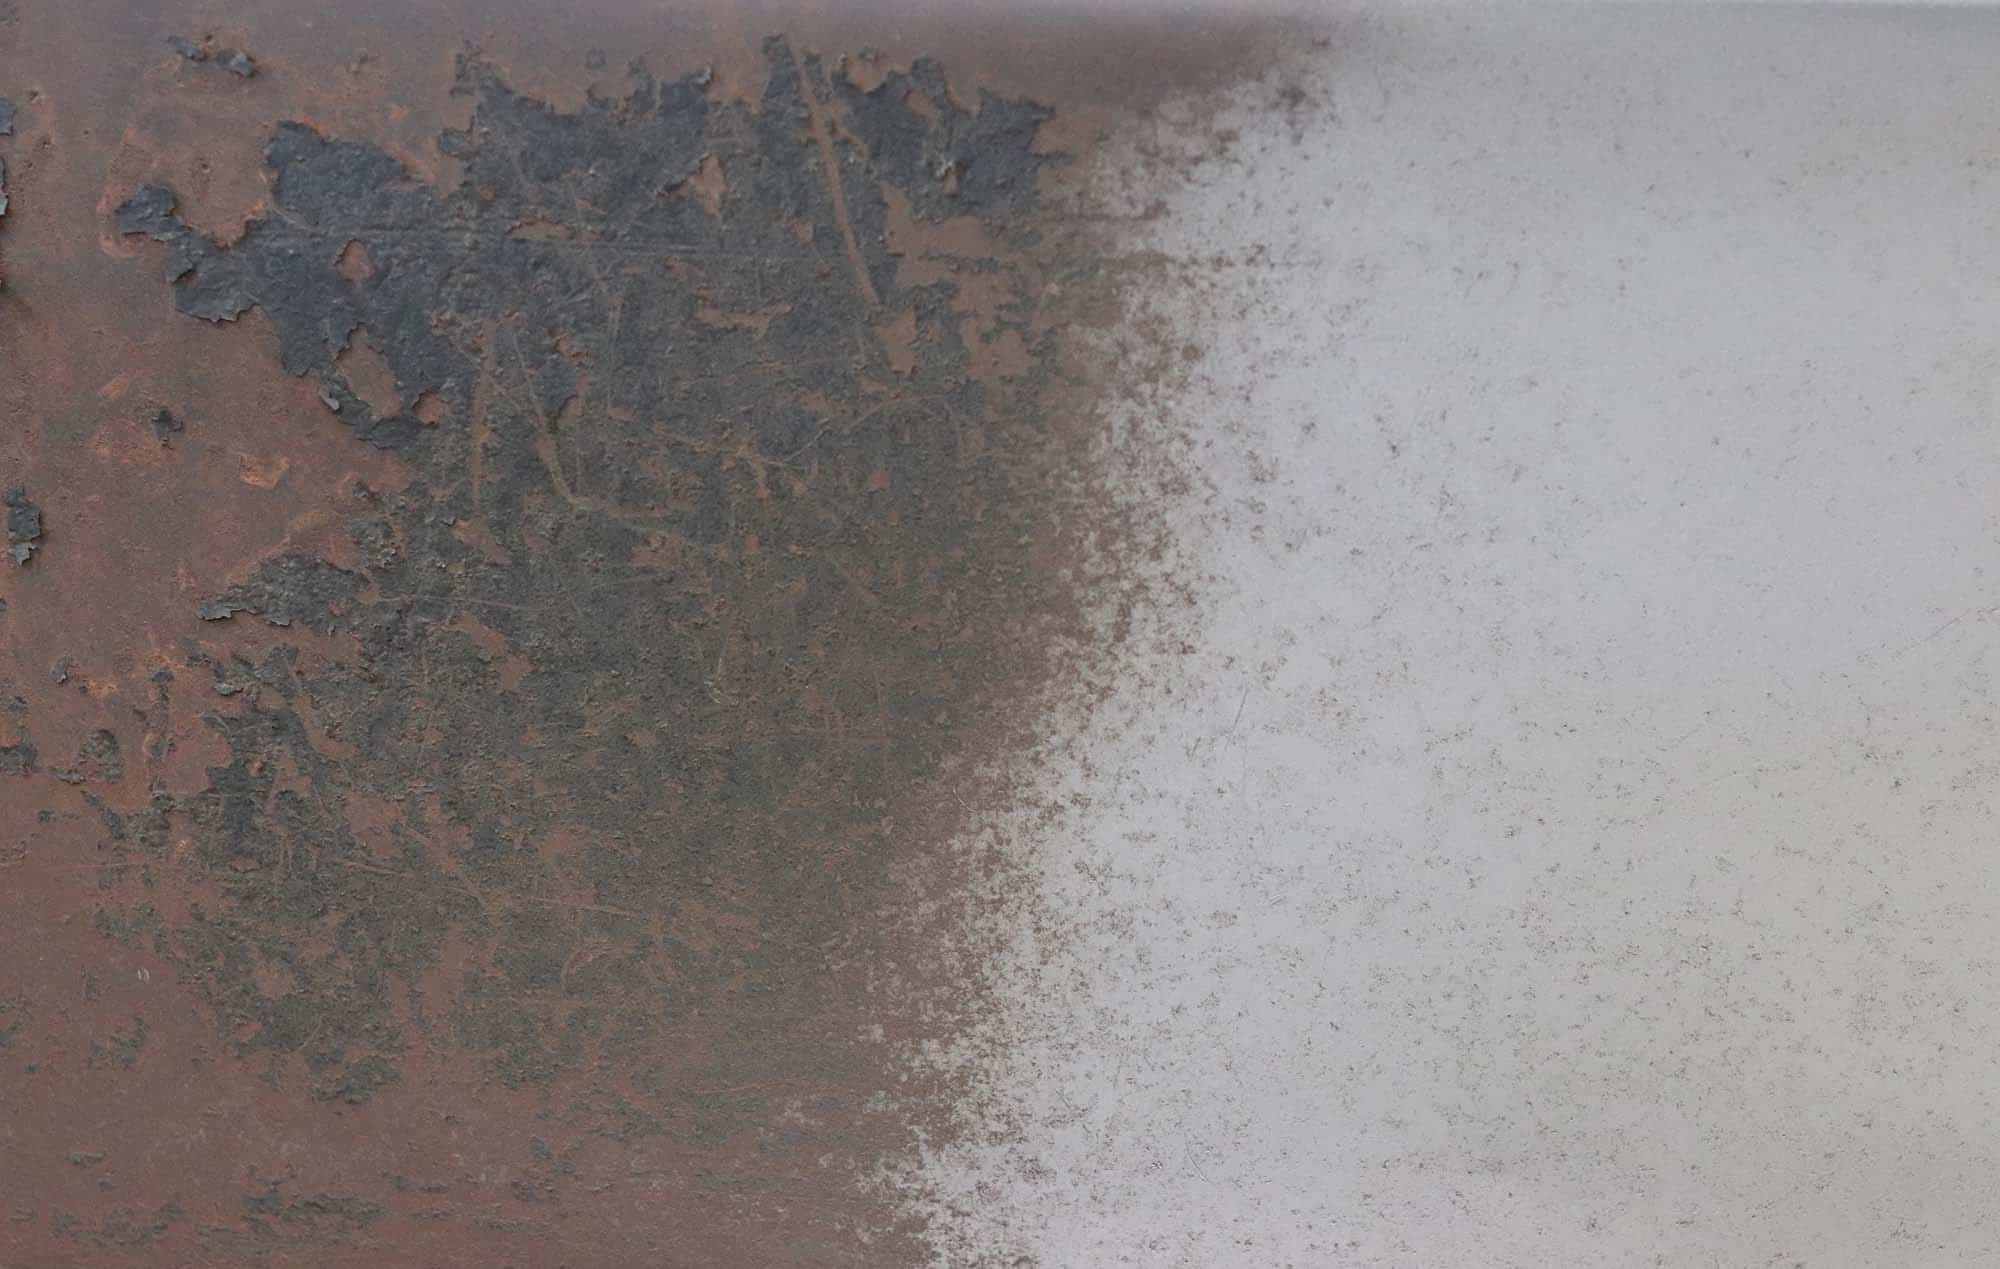 Night and day difference between the blasting and old rusty metal.